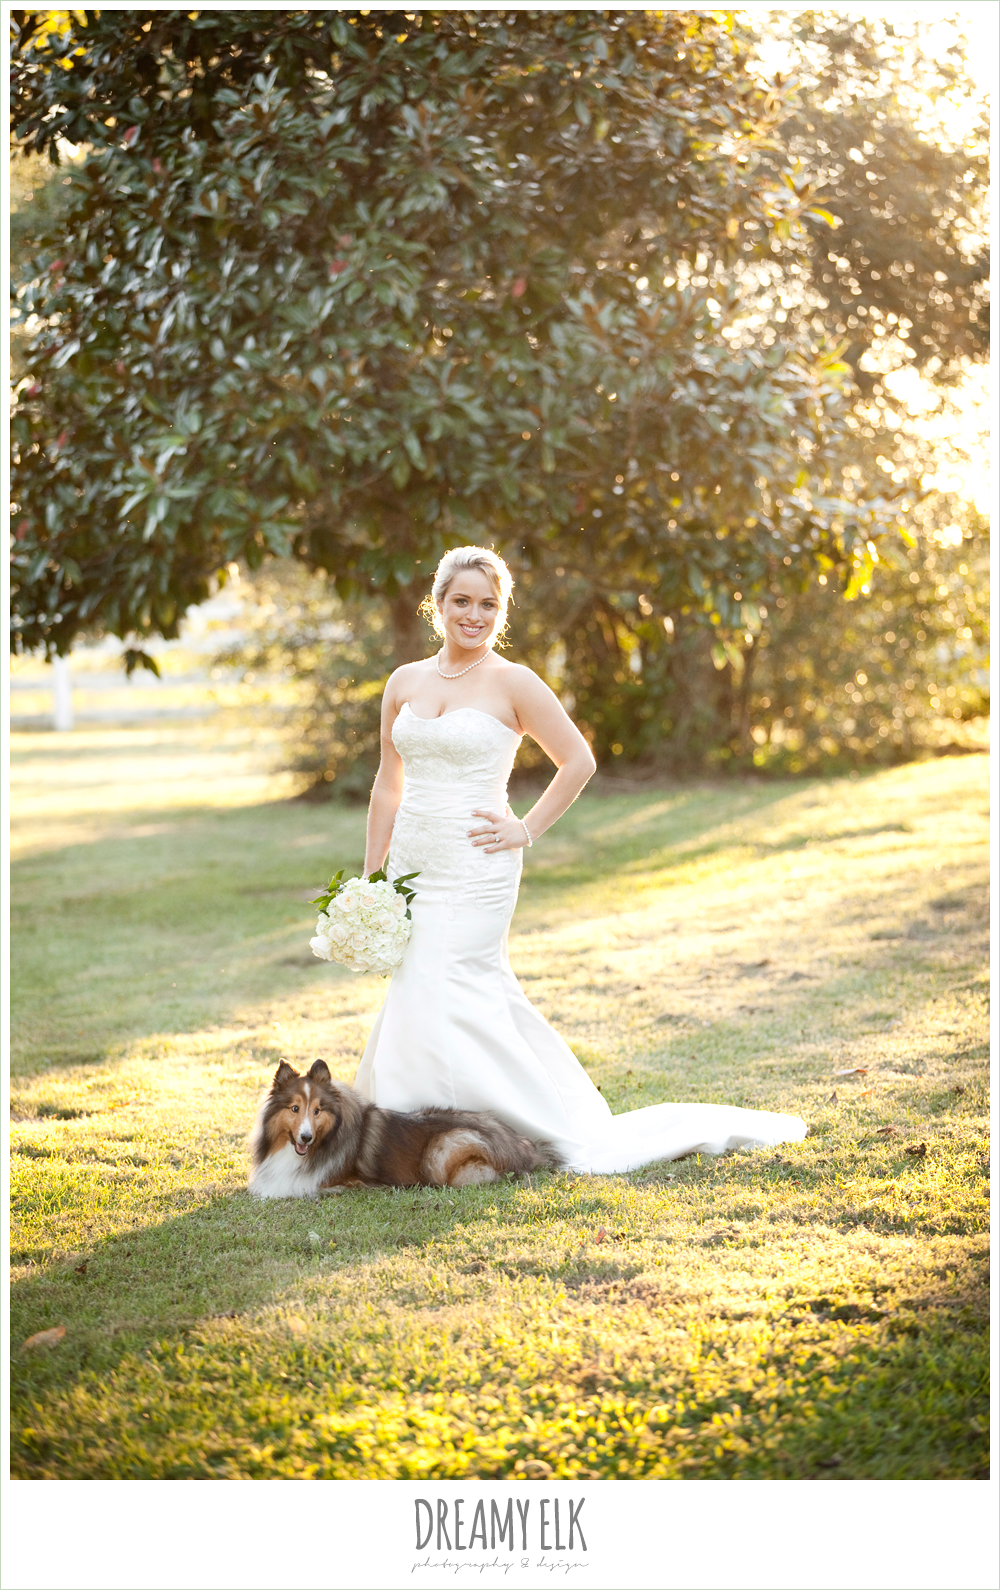 bridal photo with dog, trumpet satin wedding dress, white wedding bouquet {dreamy elk photography and design}